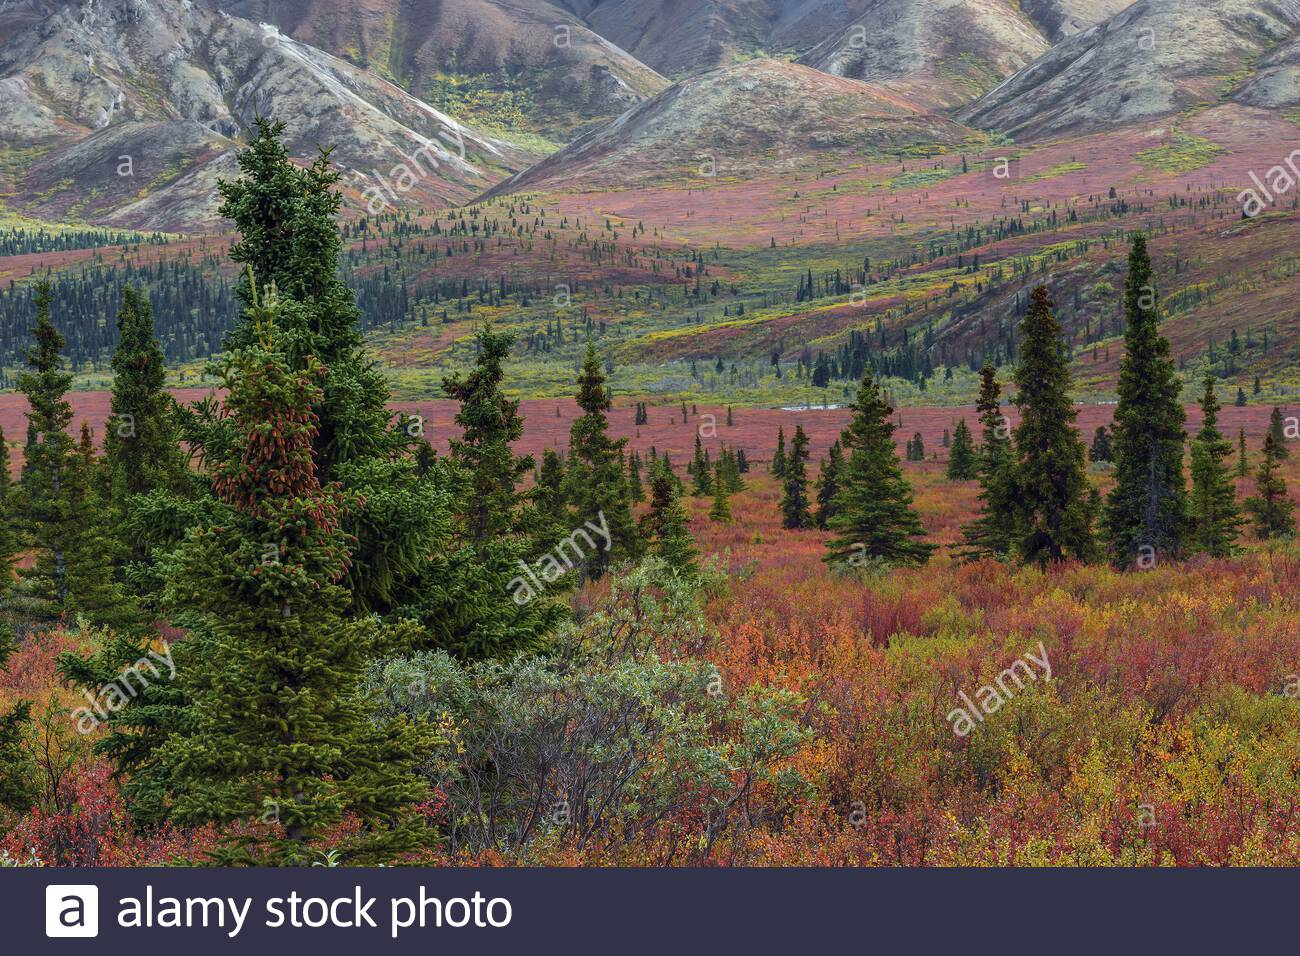 denali-national-park-in-alaska-usa-fall-